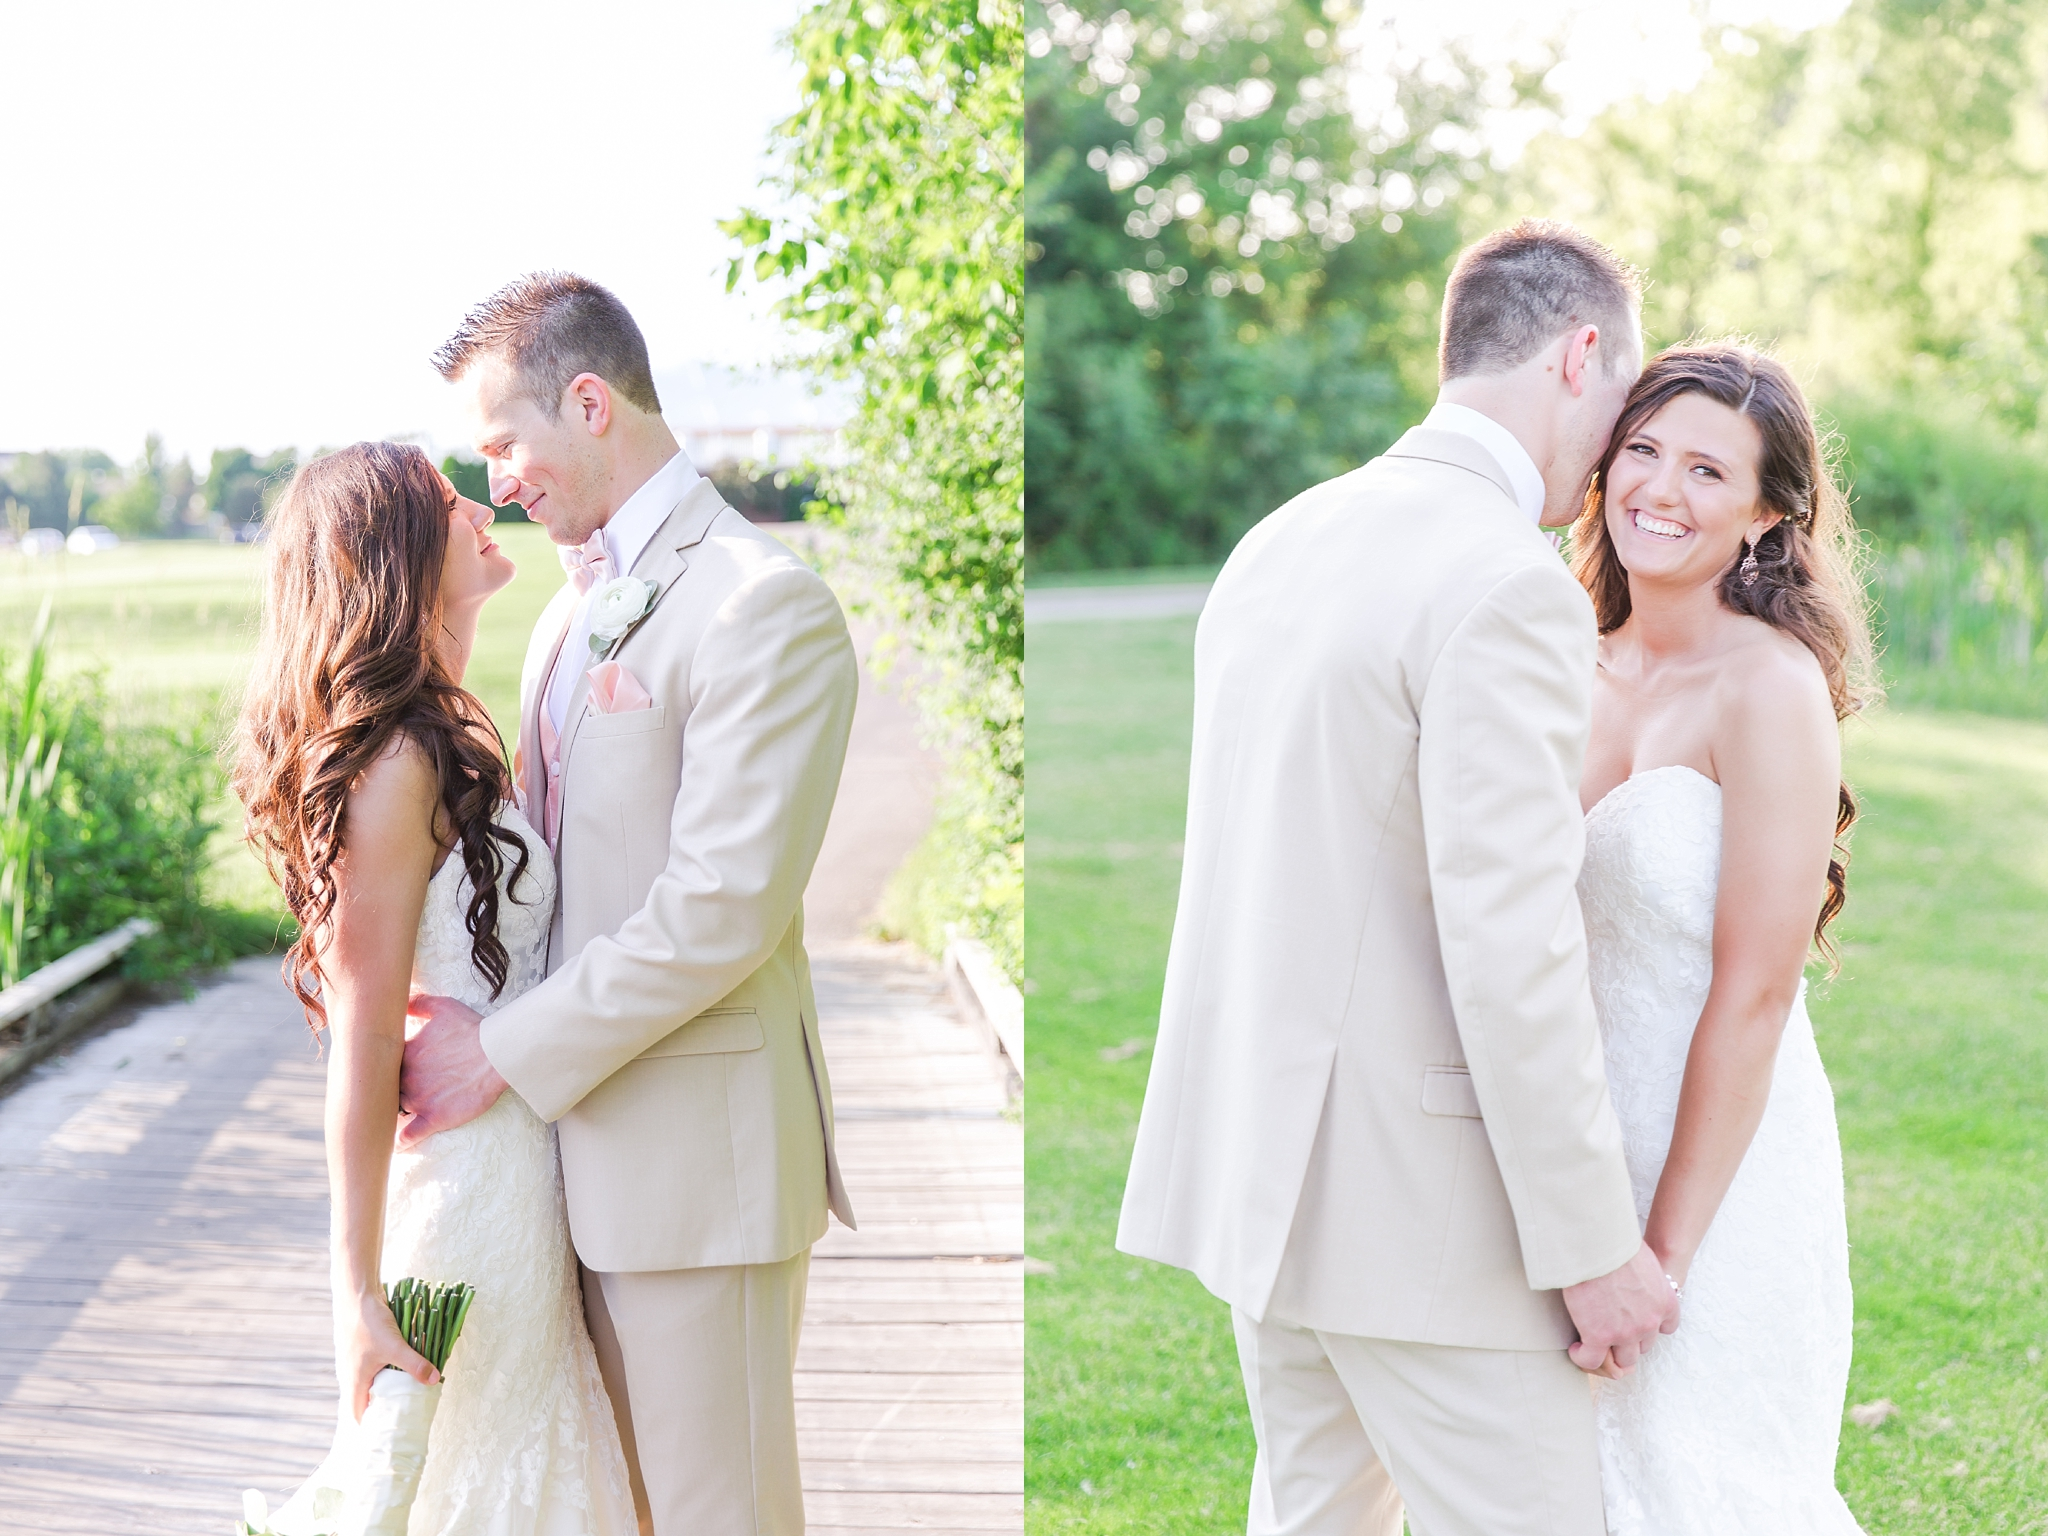 candid-timeless-wedding-photos-at-the-captains-club-in-grand-blanc-michigan-by-courtney-carolyn-photography_0065.jpg